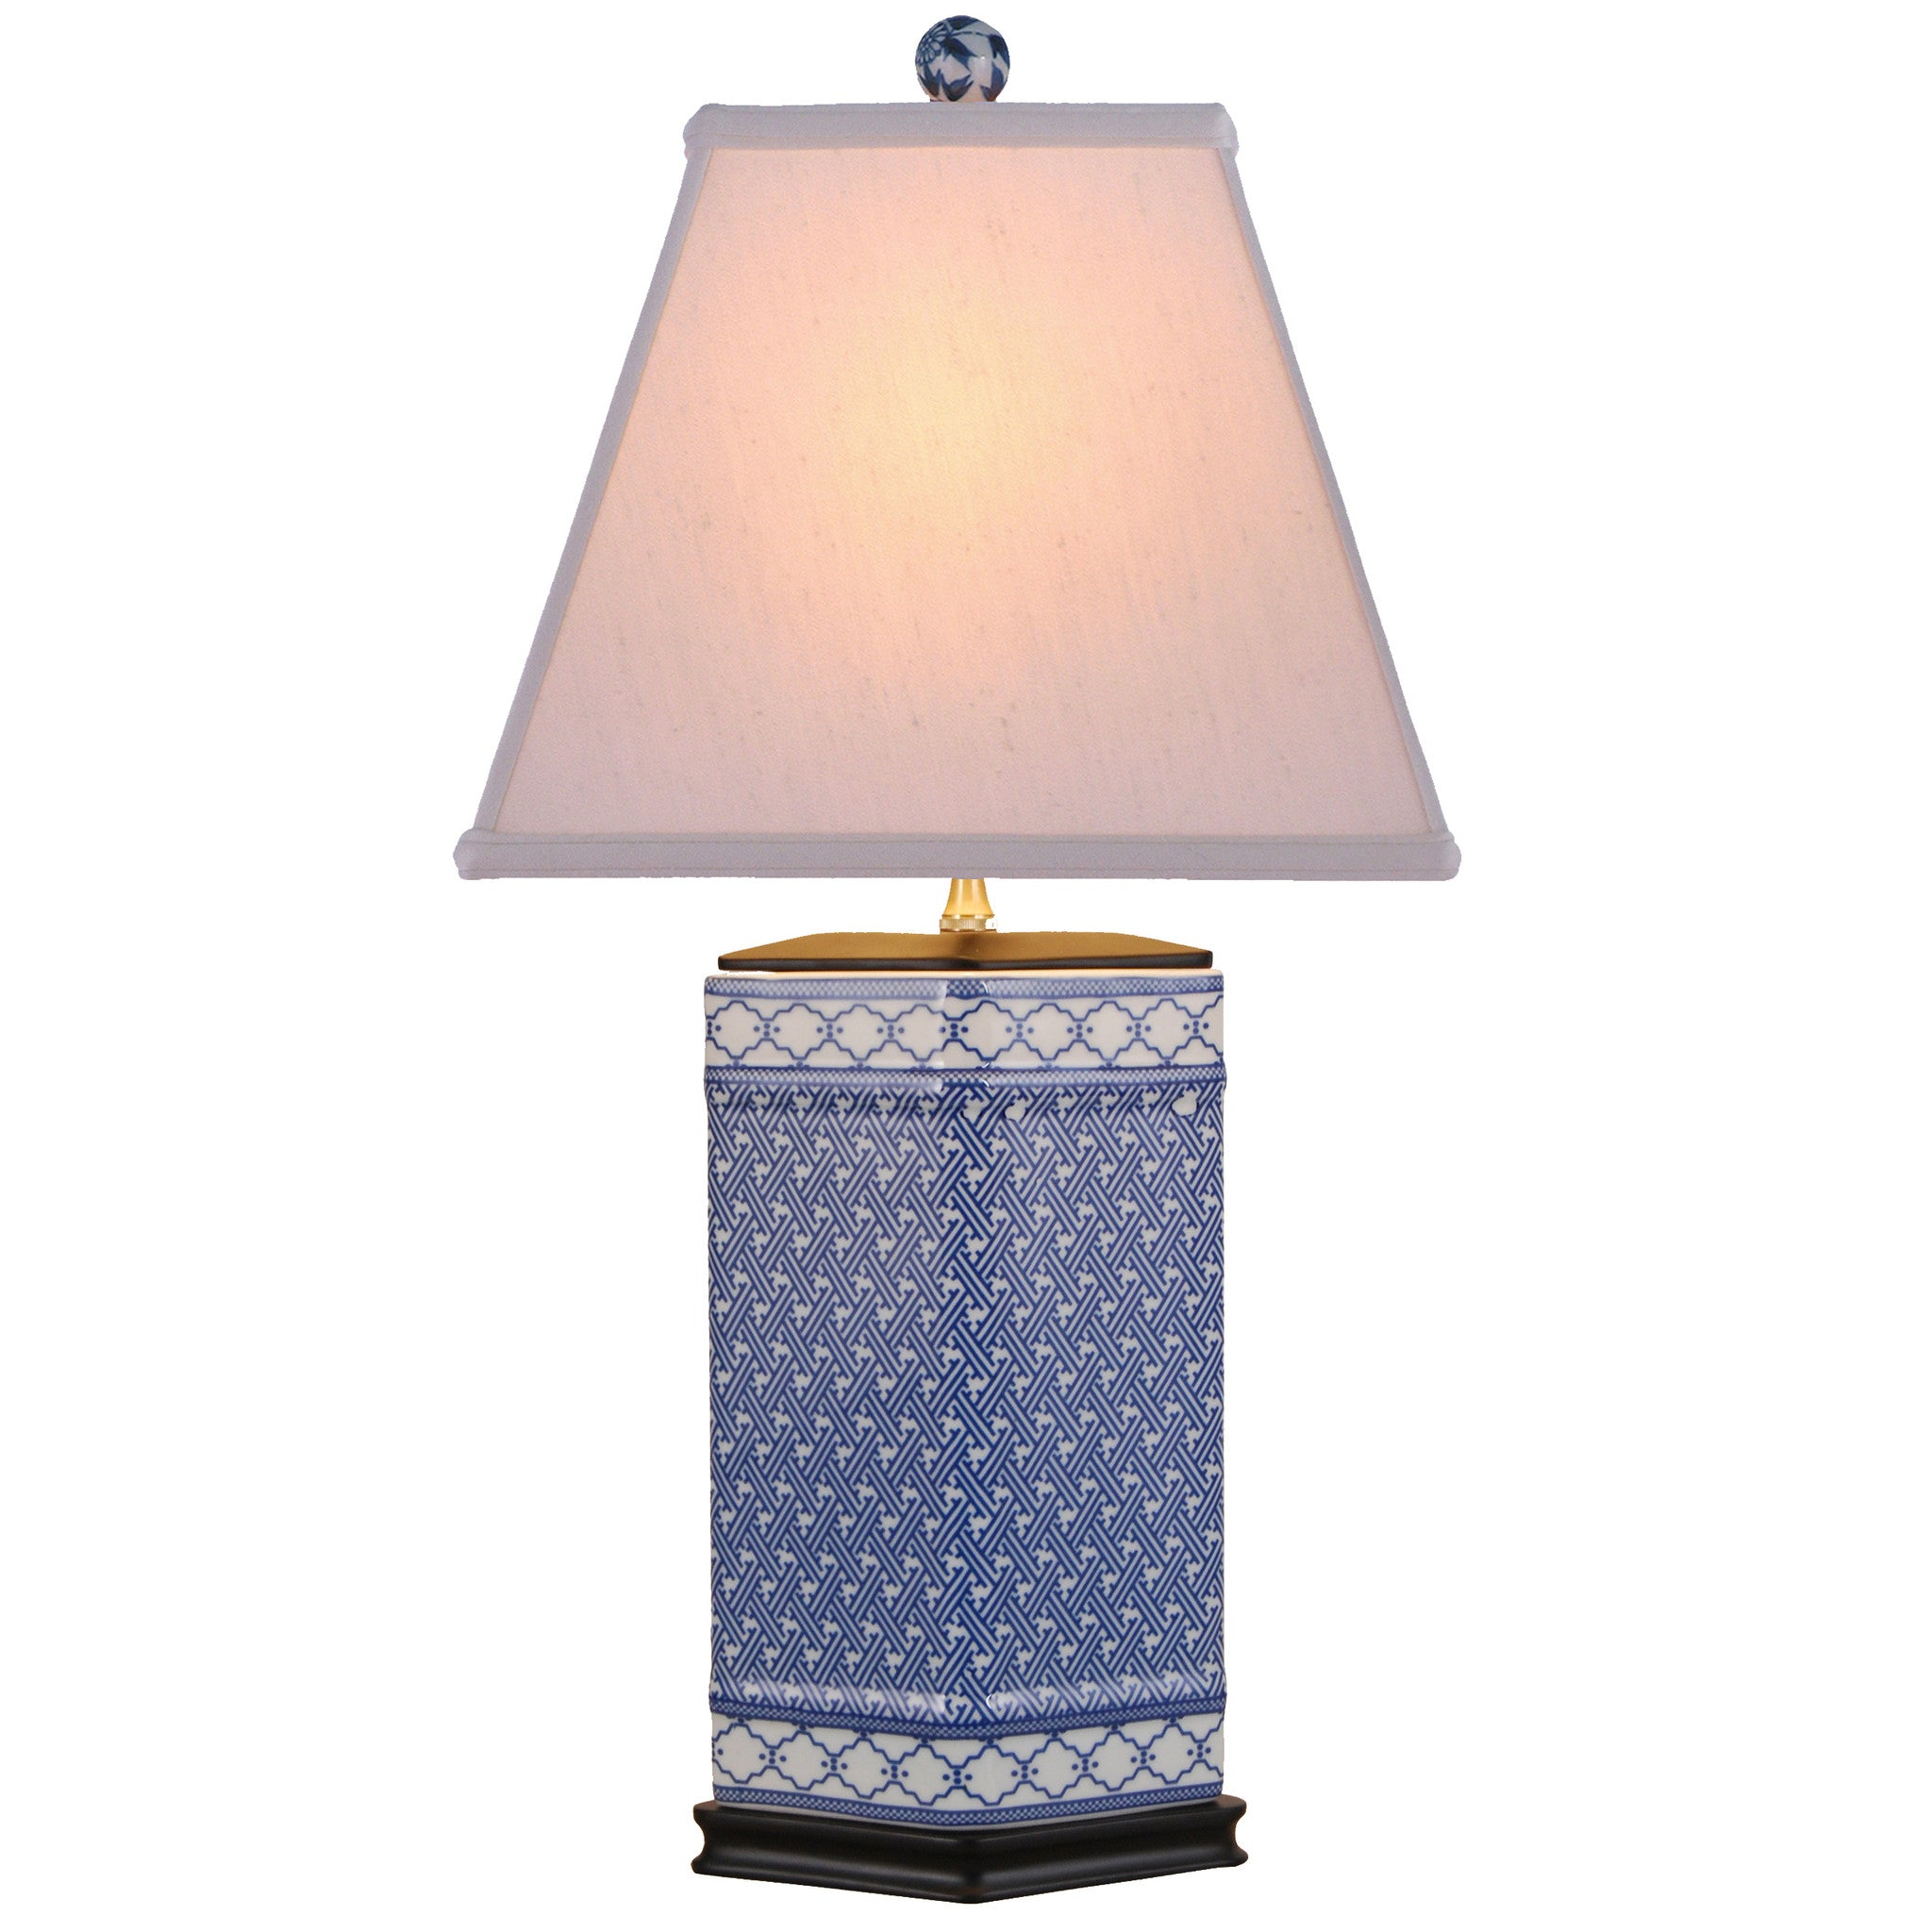 Rhombic Blue And White Porcelain Table Lamp ...